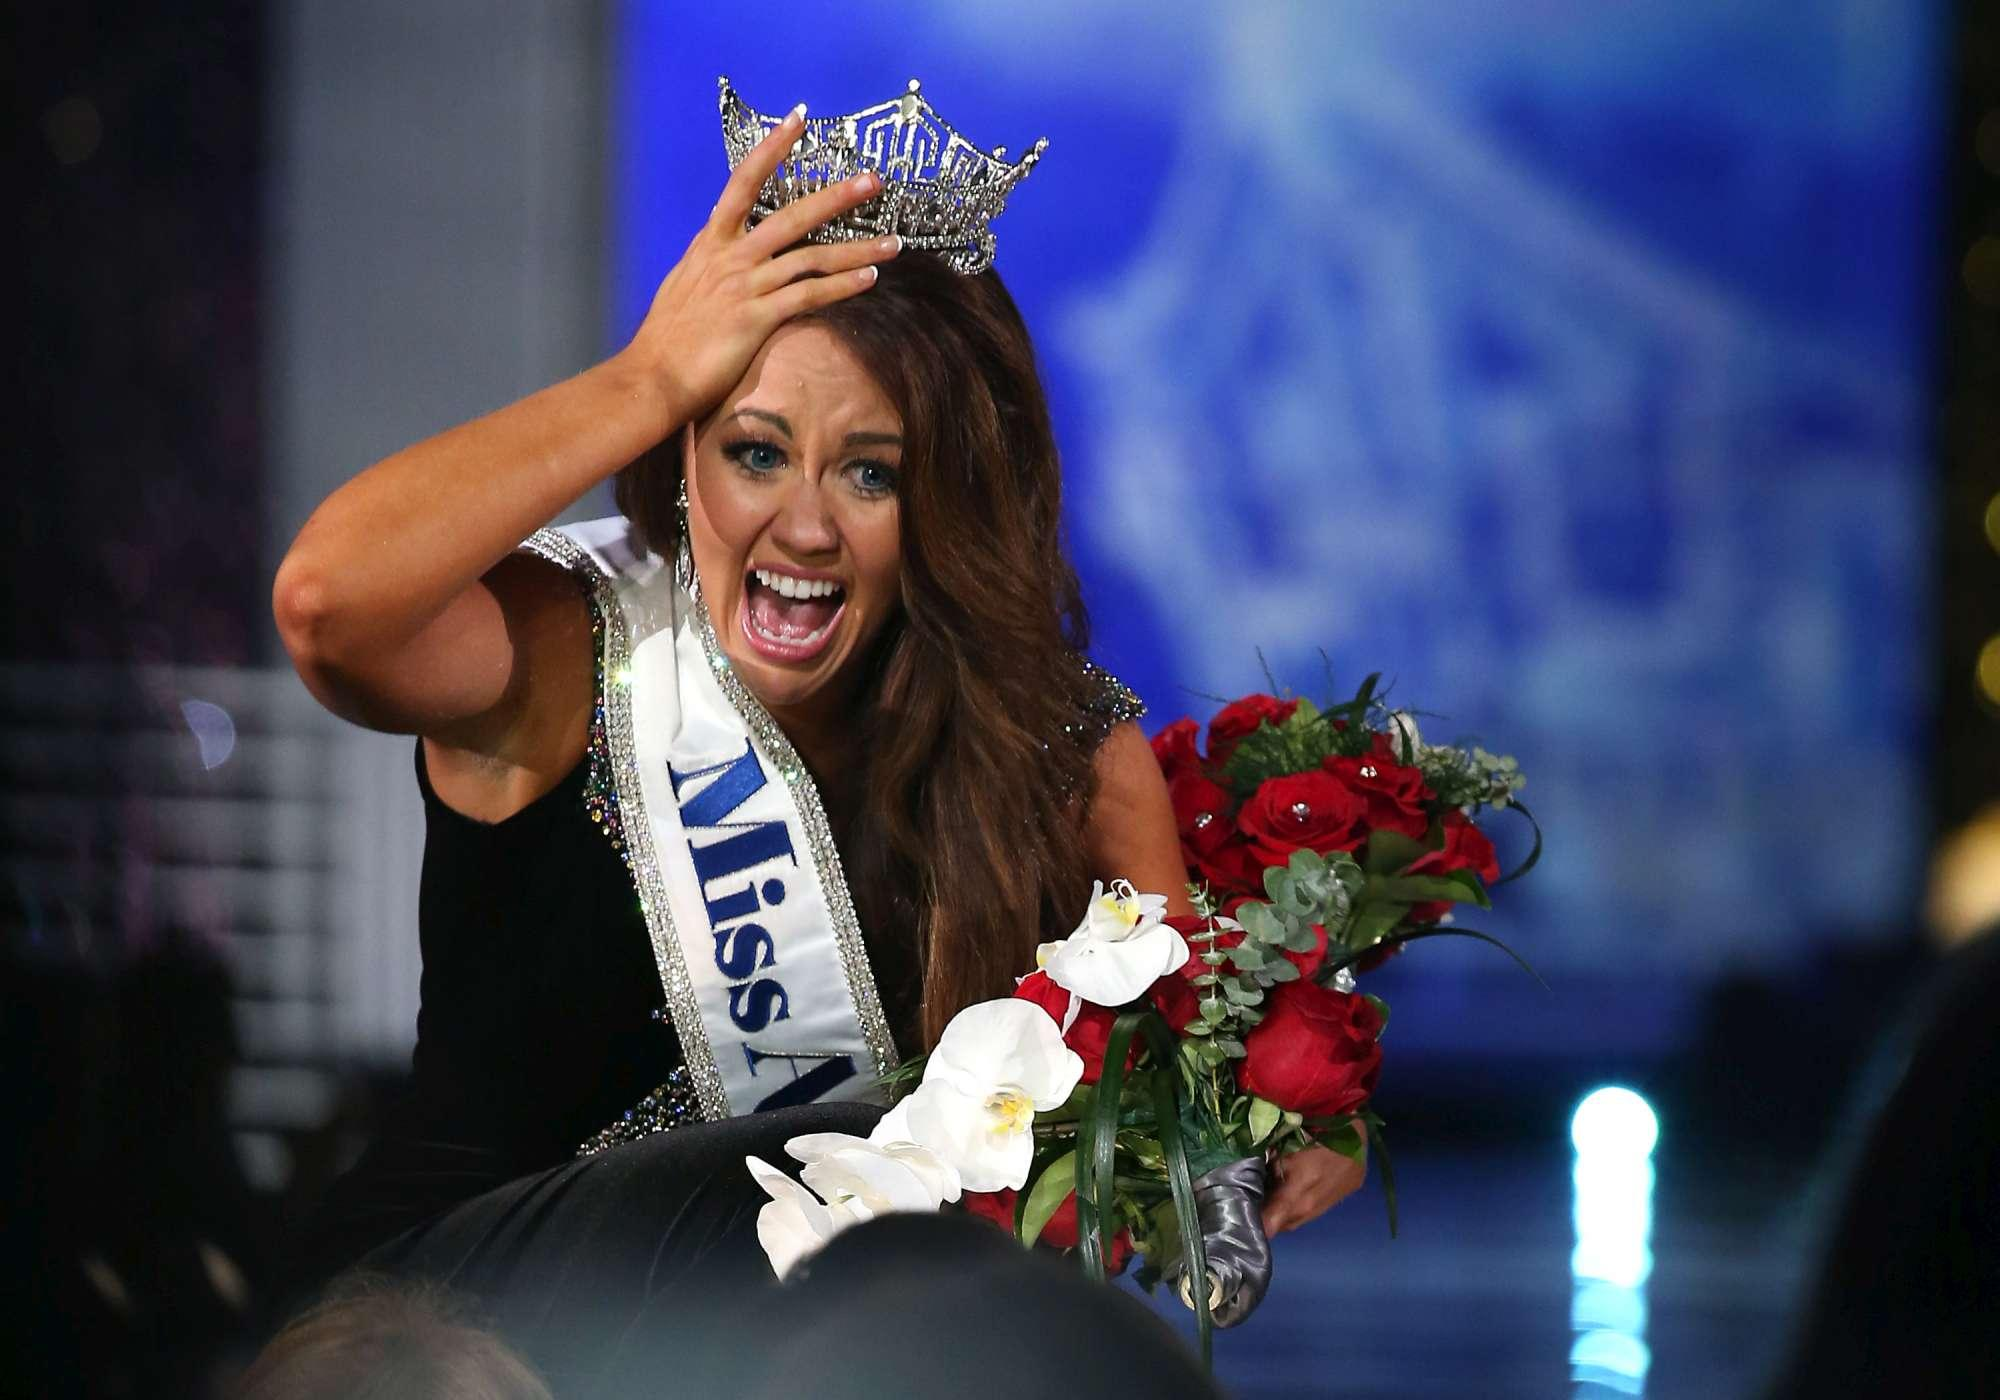 Miss America, la reginetta critica Donald Trump